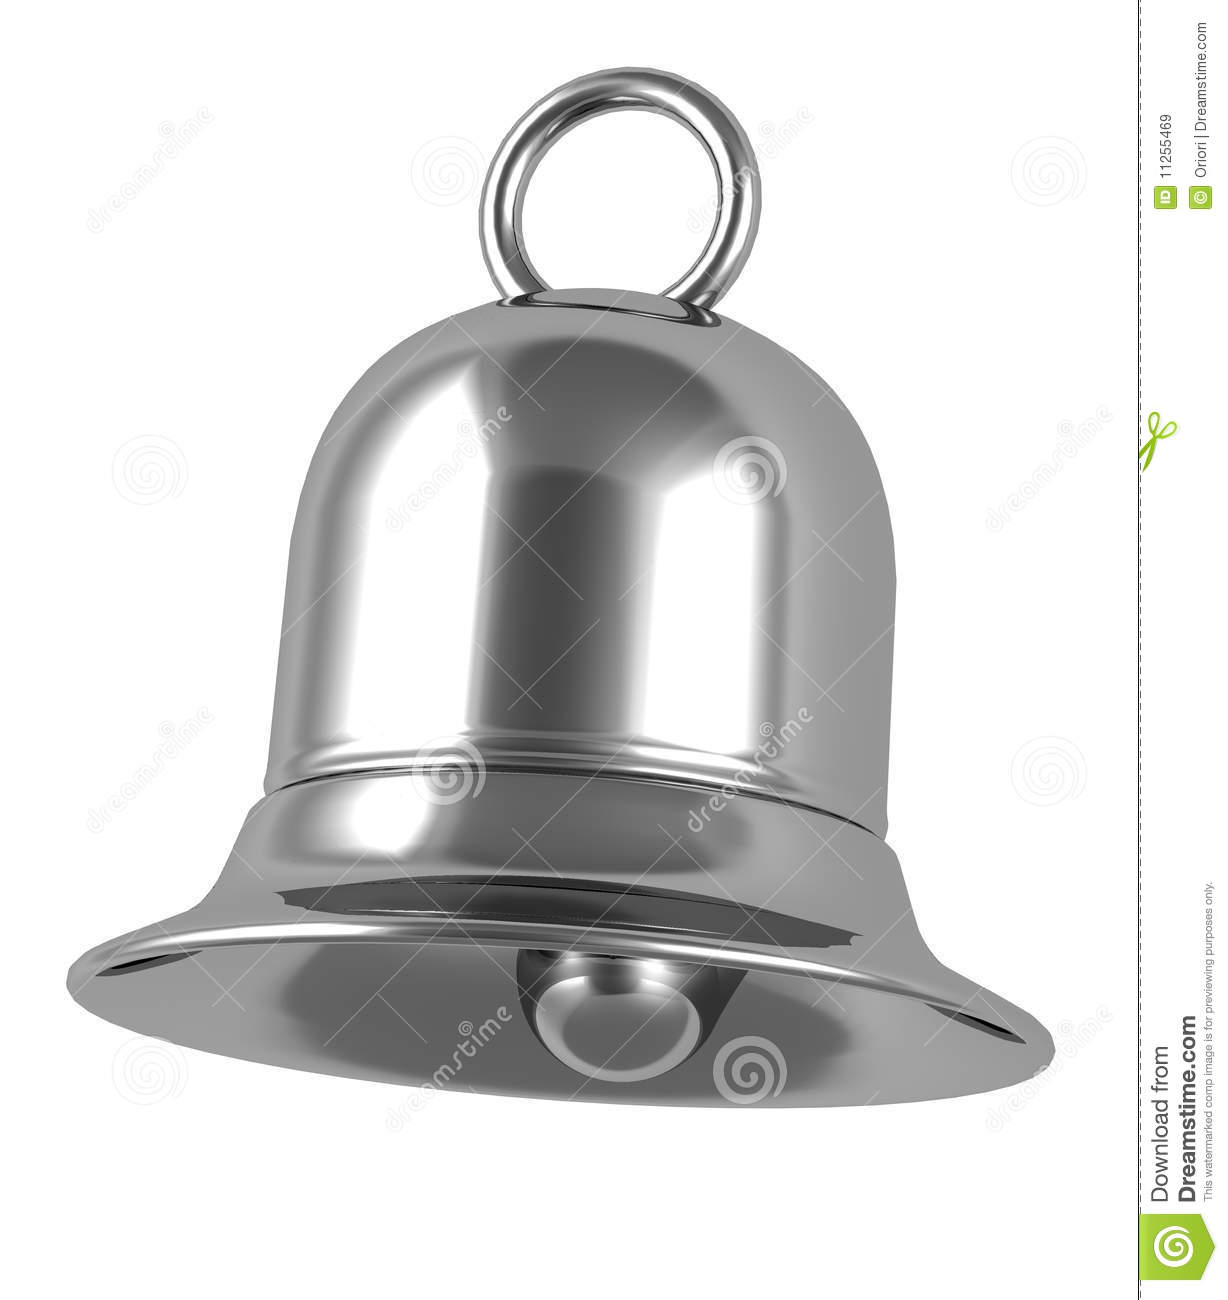 Silver Bell Royalty Free Stock Images - Image: 11255469